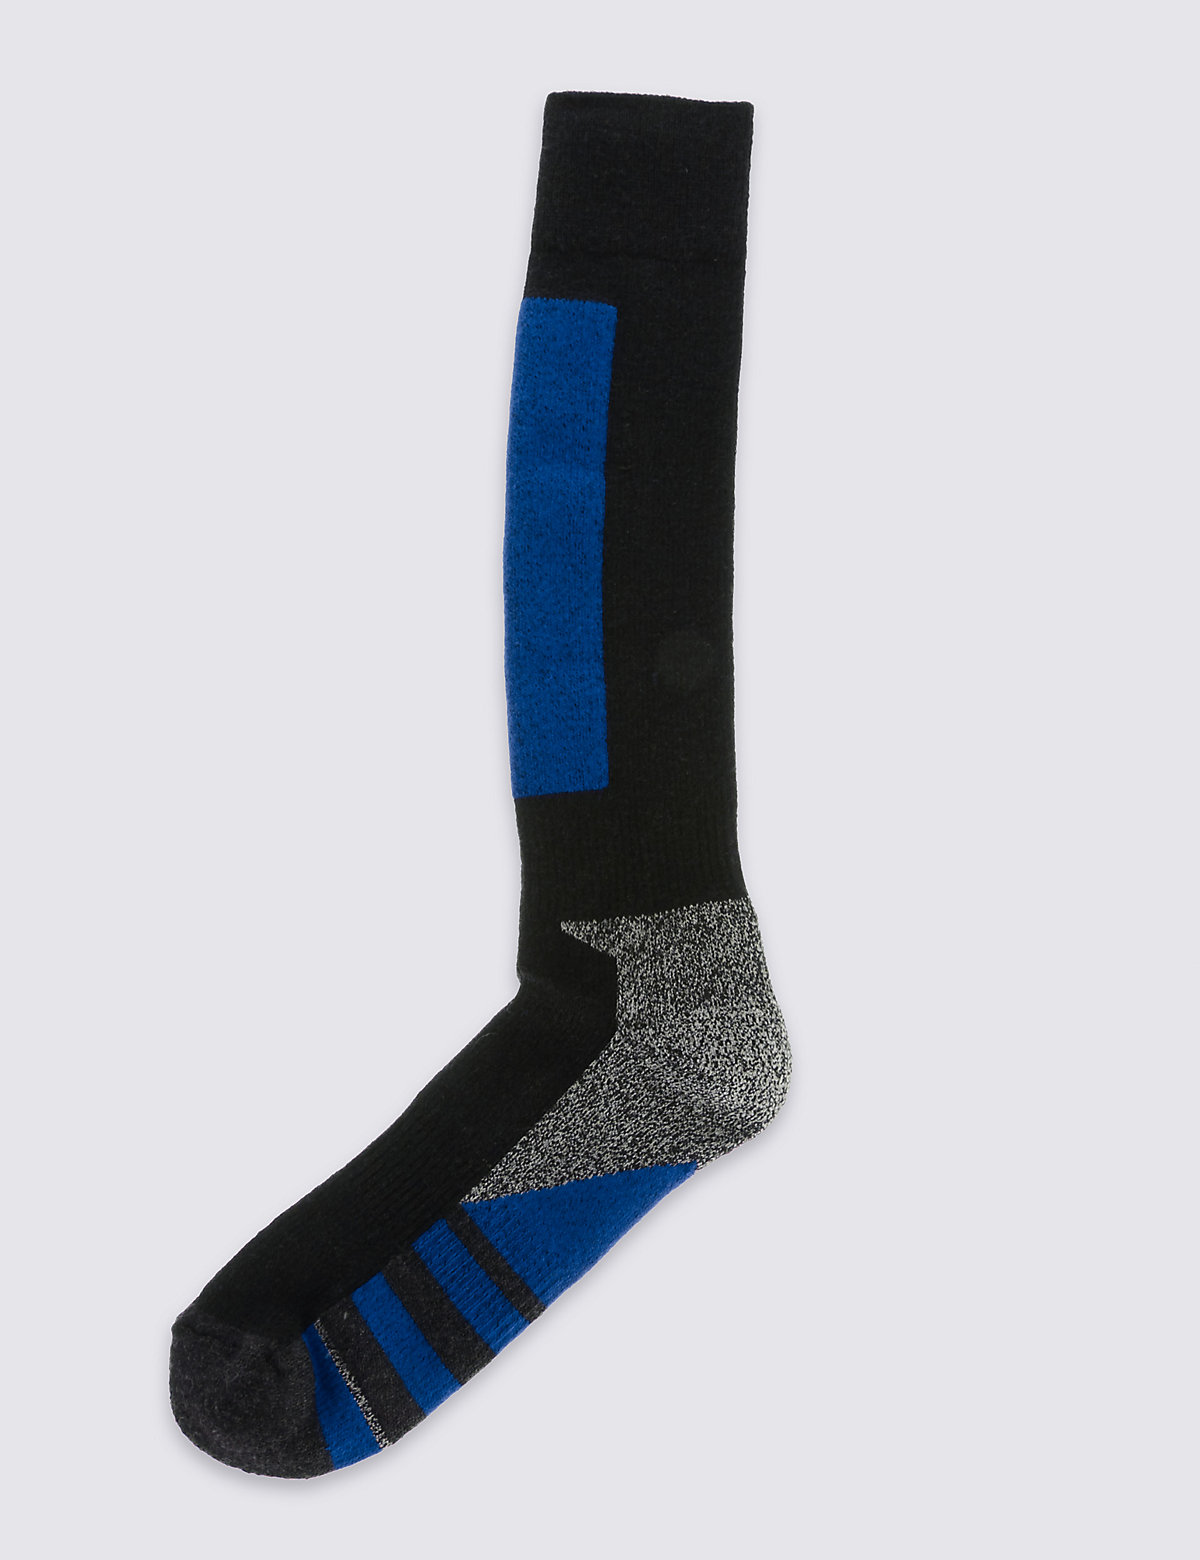 M&S Collection Wool Blend Ankle High Socks